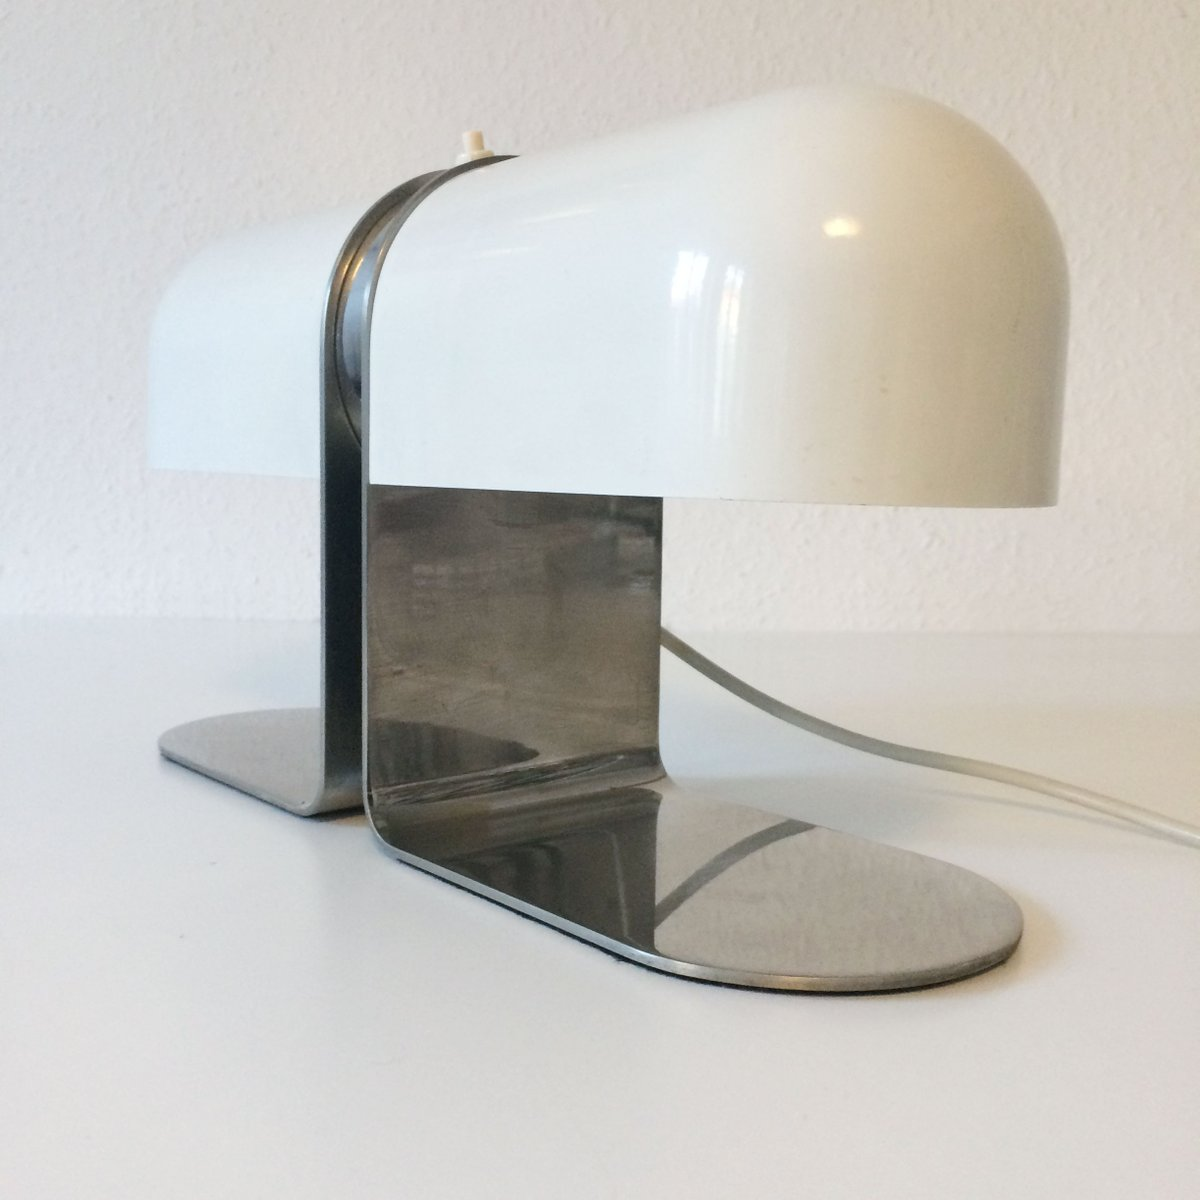 Mid century modern table lamp by andre ricard for metalarte en venta mid century modern table lamp by andre ricard for metalarte aloadofball Image collections